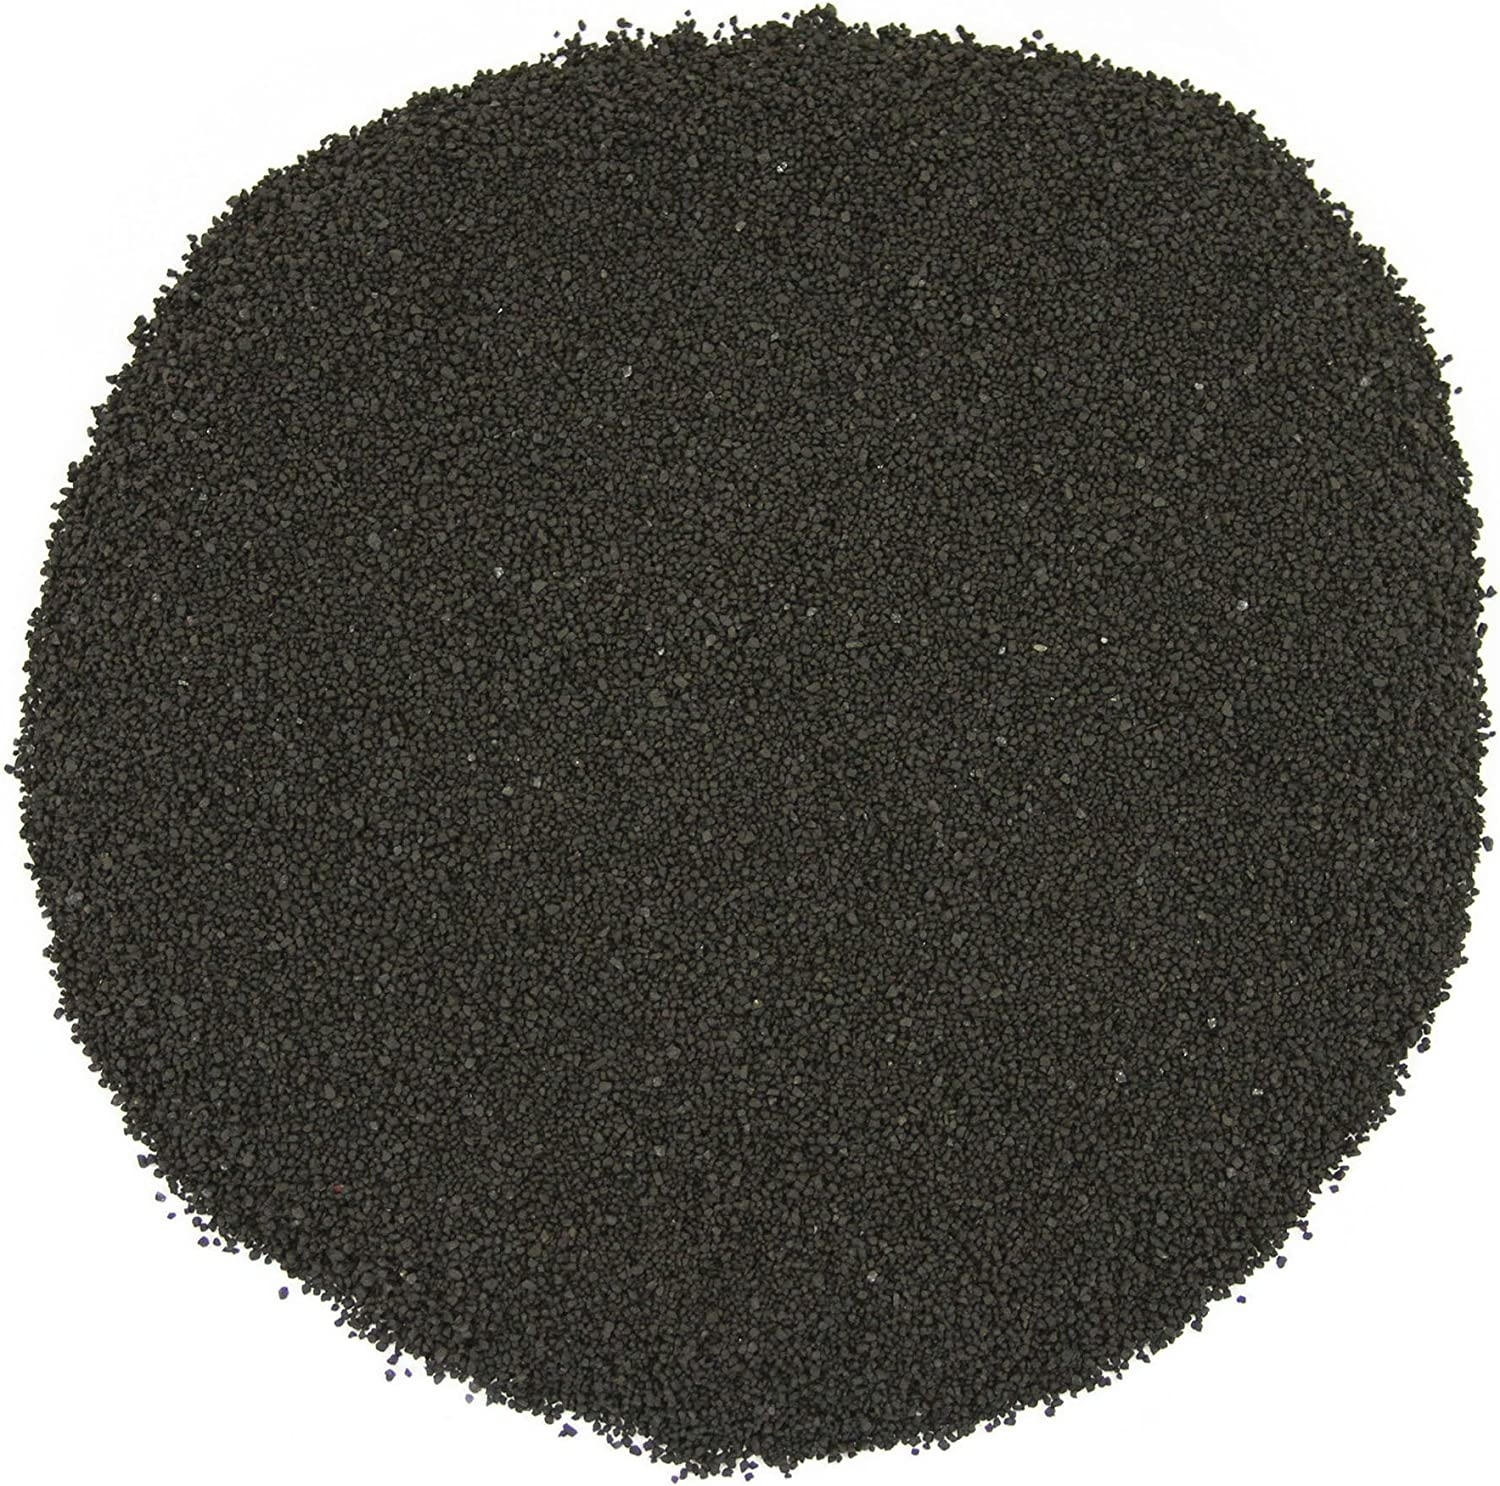 Koyal Wholesale Centerpiece Vase Filler Decorative Sand, 4.5-Pound, Black